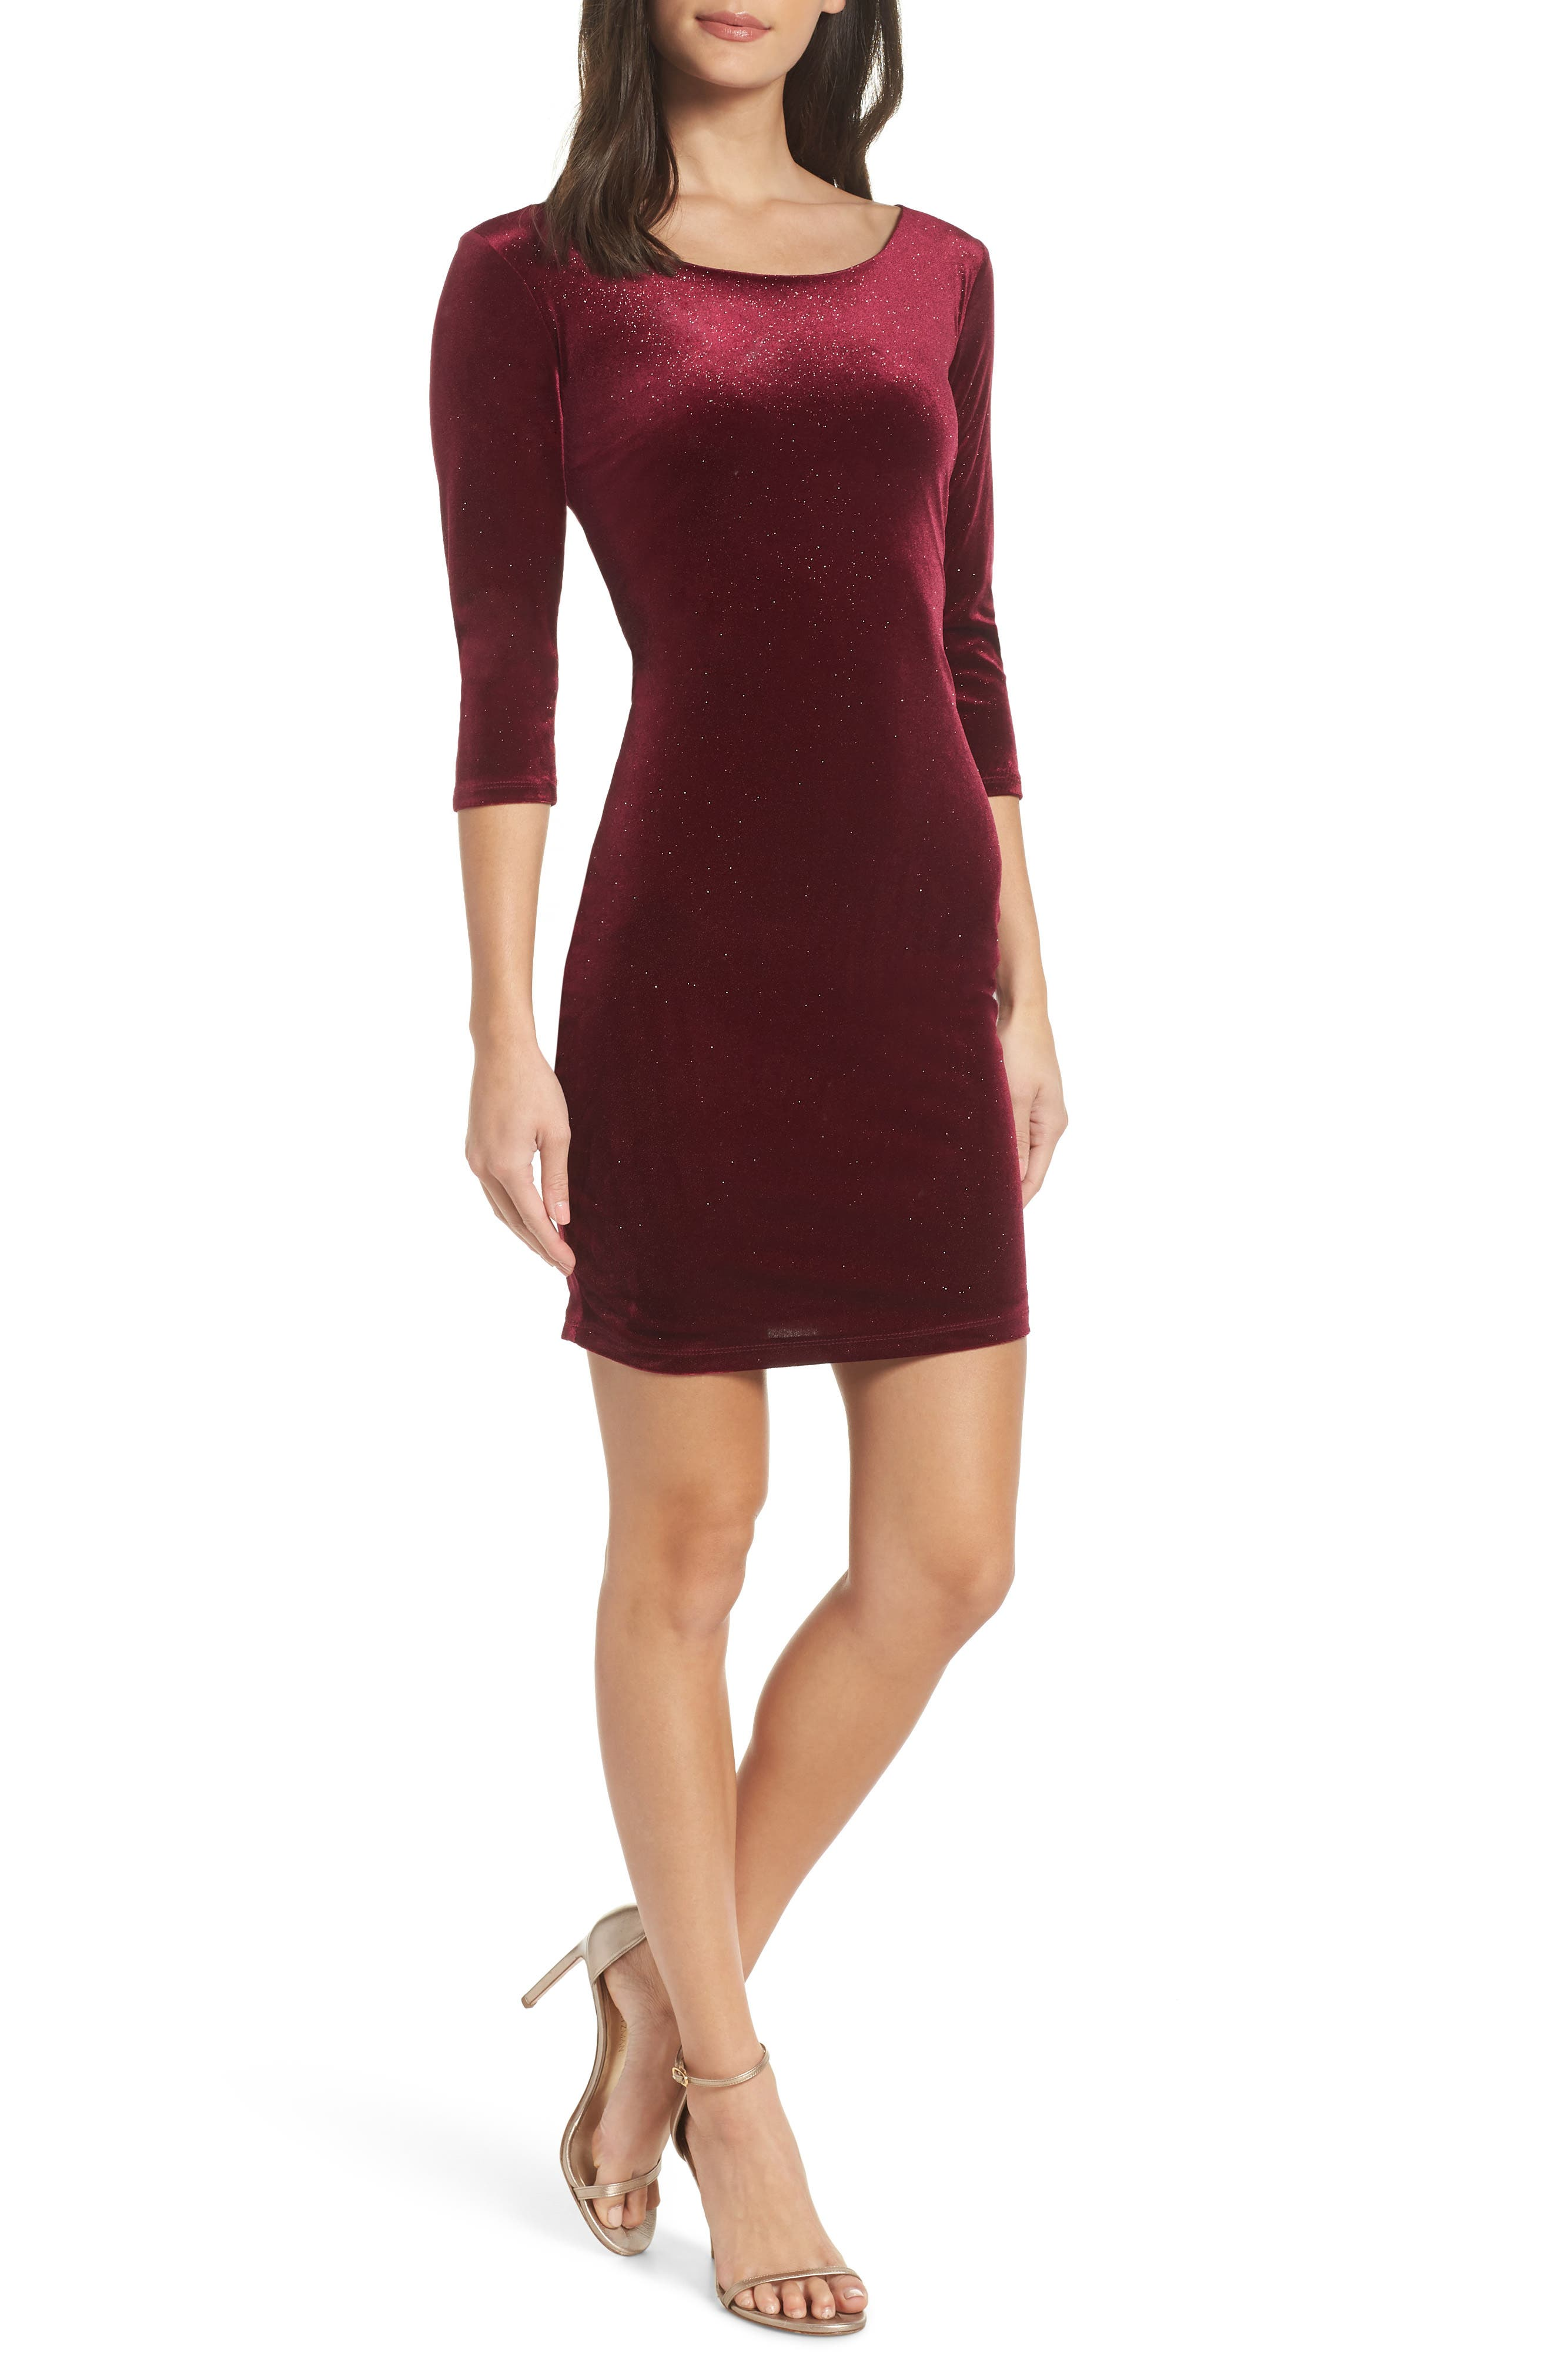 SEQUIN HEARTS Glitter Velvet Body-Con Sheath, Main, color, WINE